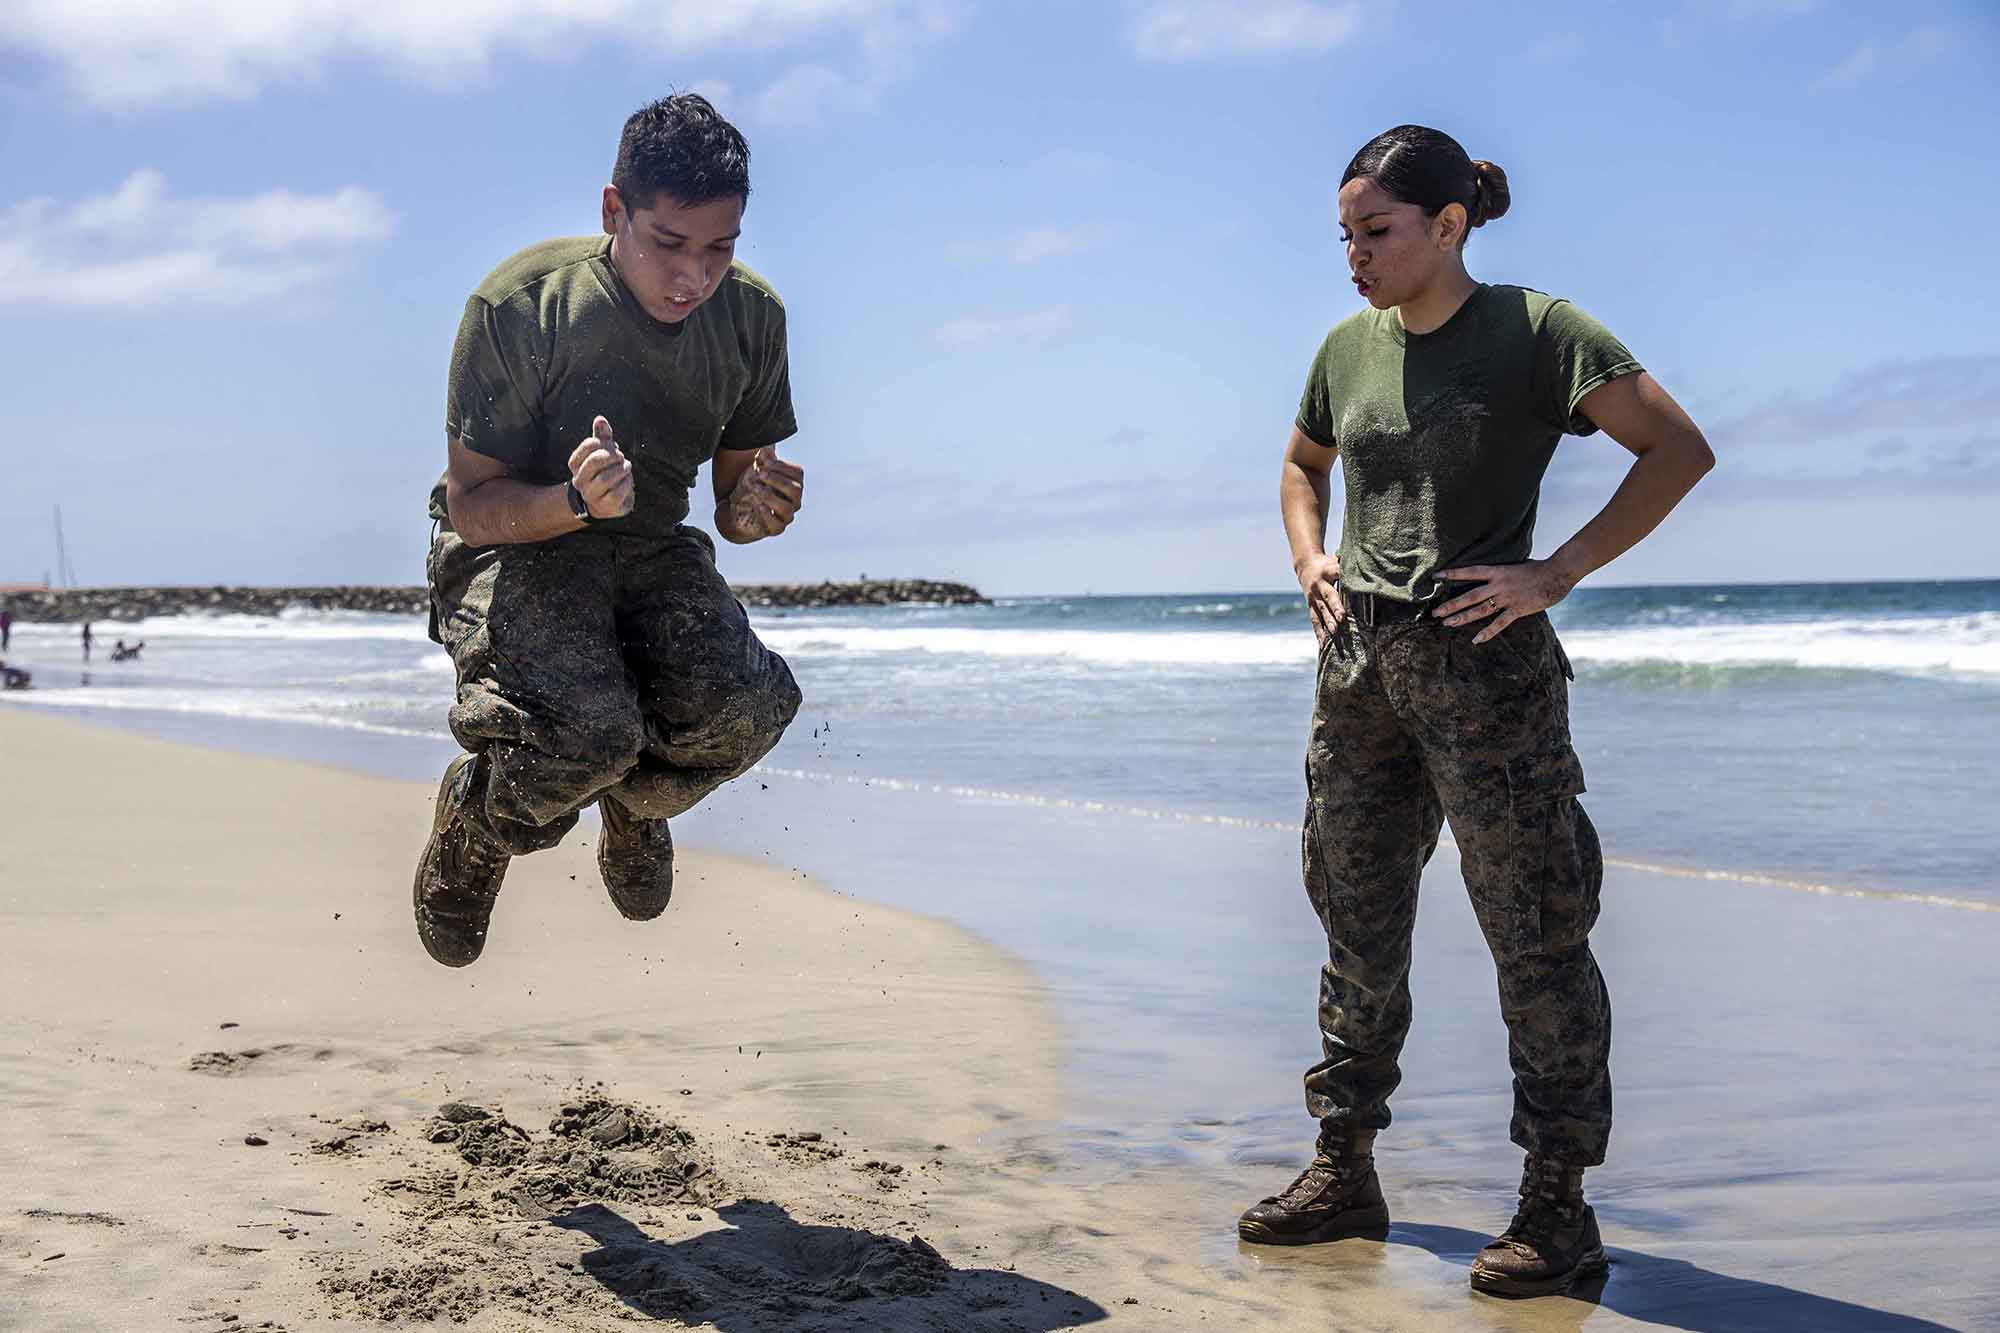 U.S. Marine Sgt. Roxanne Gorostieta motivates a fellow Marine during a physical training session at Del Mar Beach on Marine Corps Base Camp Pendleton, Calif., Aug. 5, 2020. (Lance Cpl. Alison Dostie/Marine Corps)